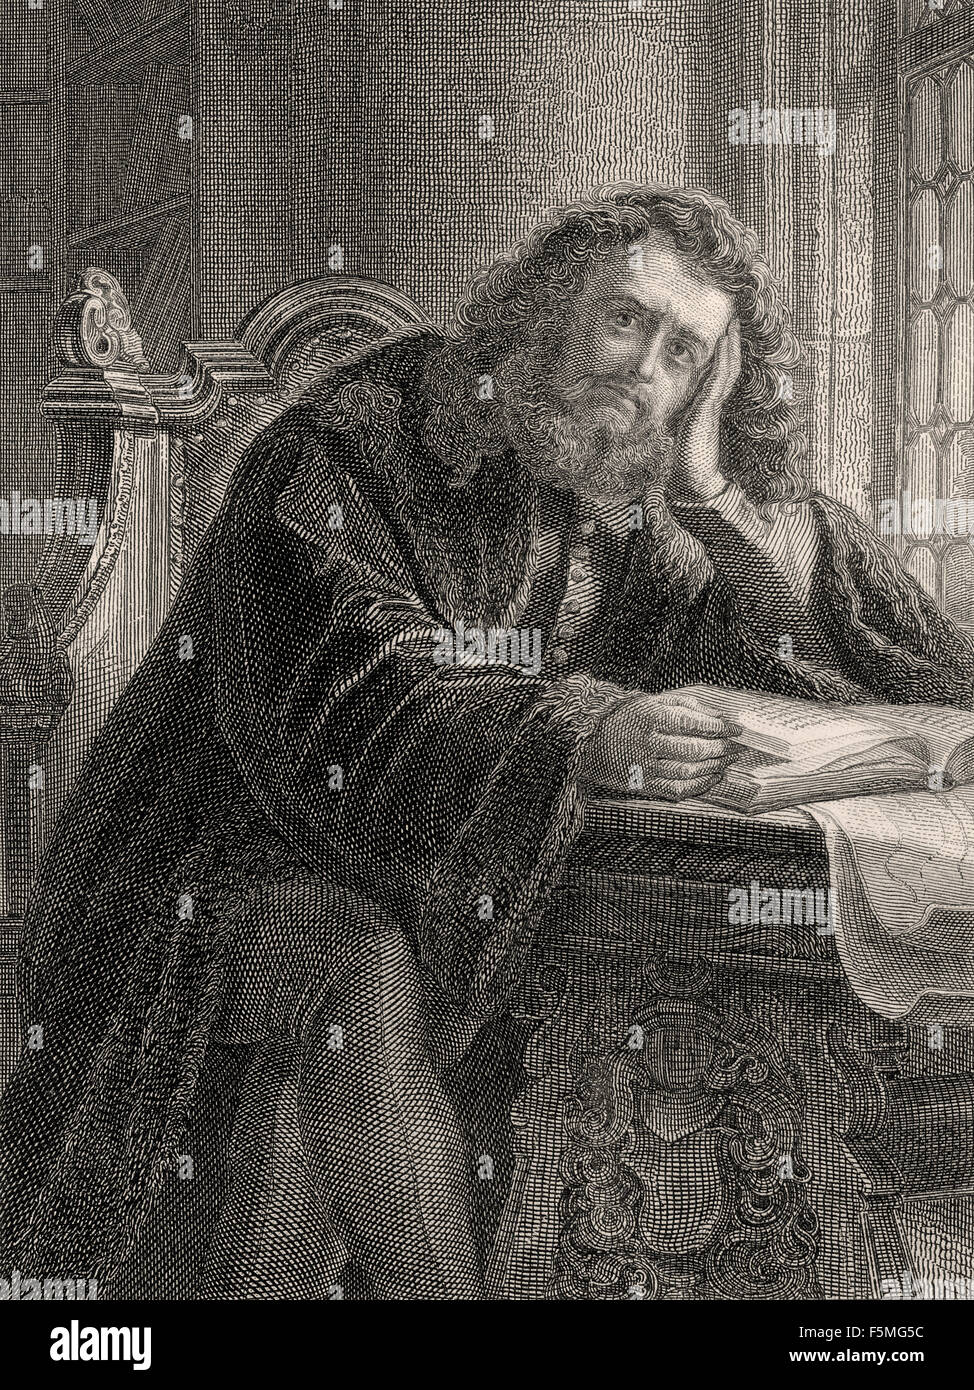 Dr. Heinrich Faust, in the tragedy Faust written by Johann Wolfgang von Goethe - Stock Image